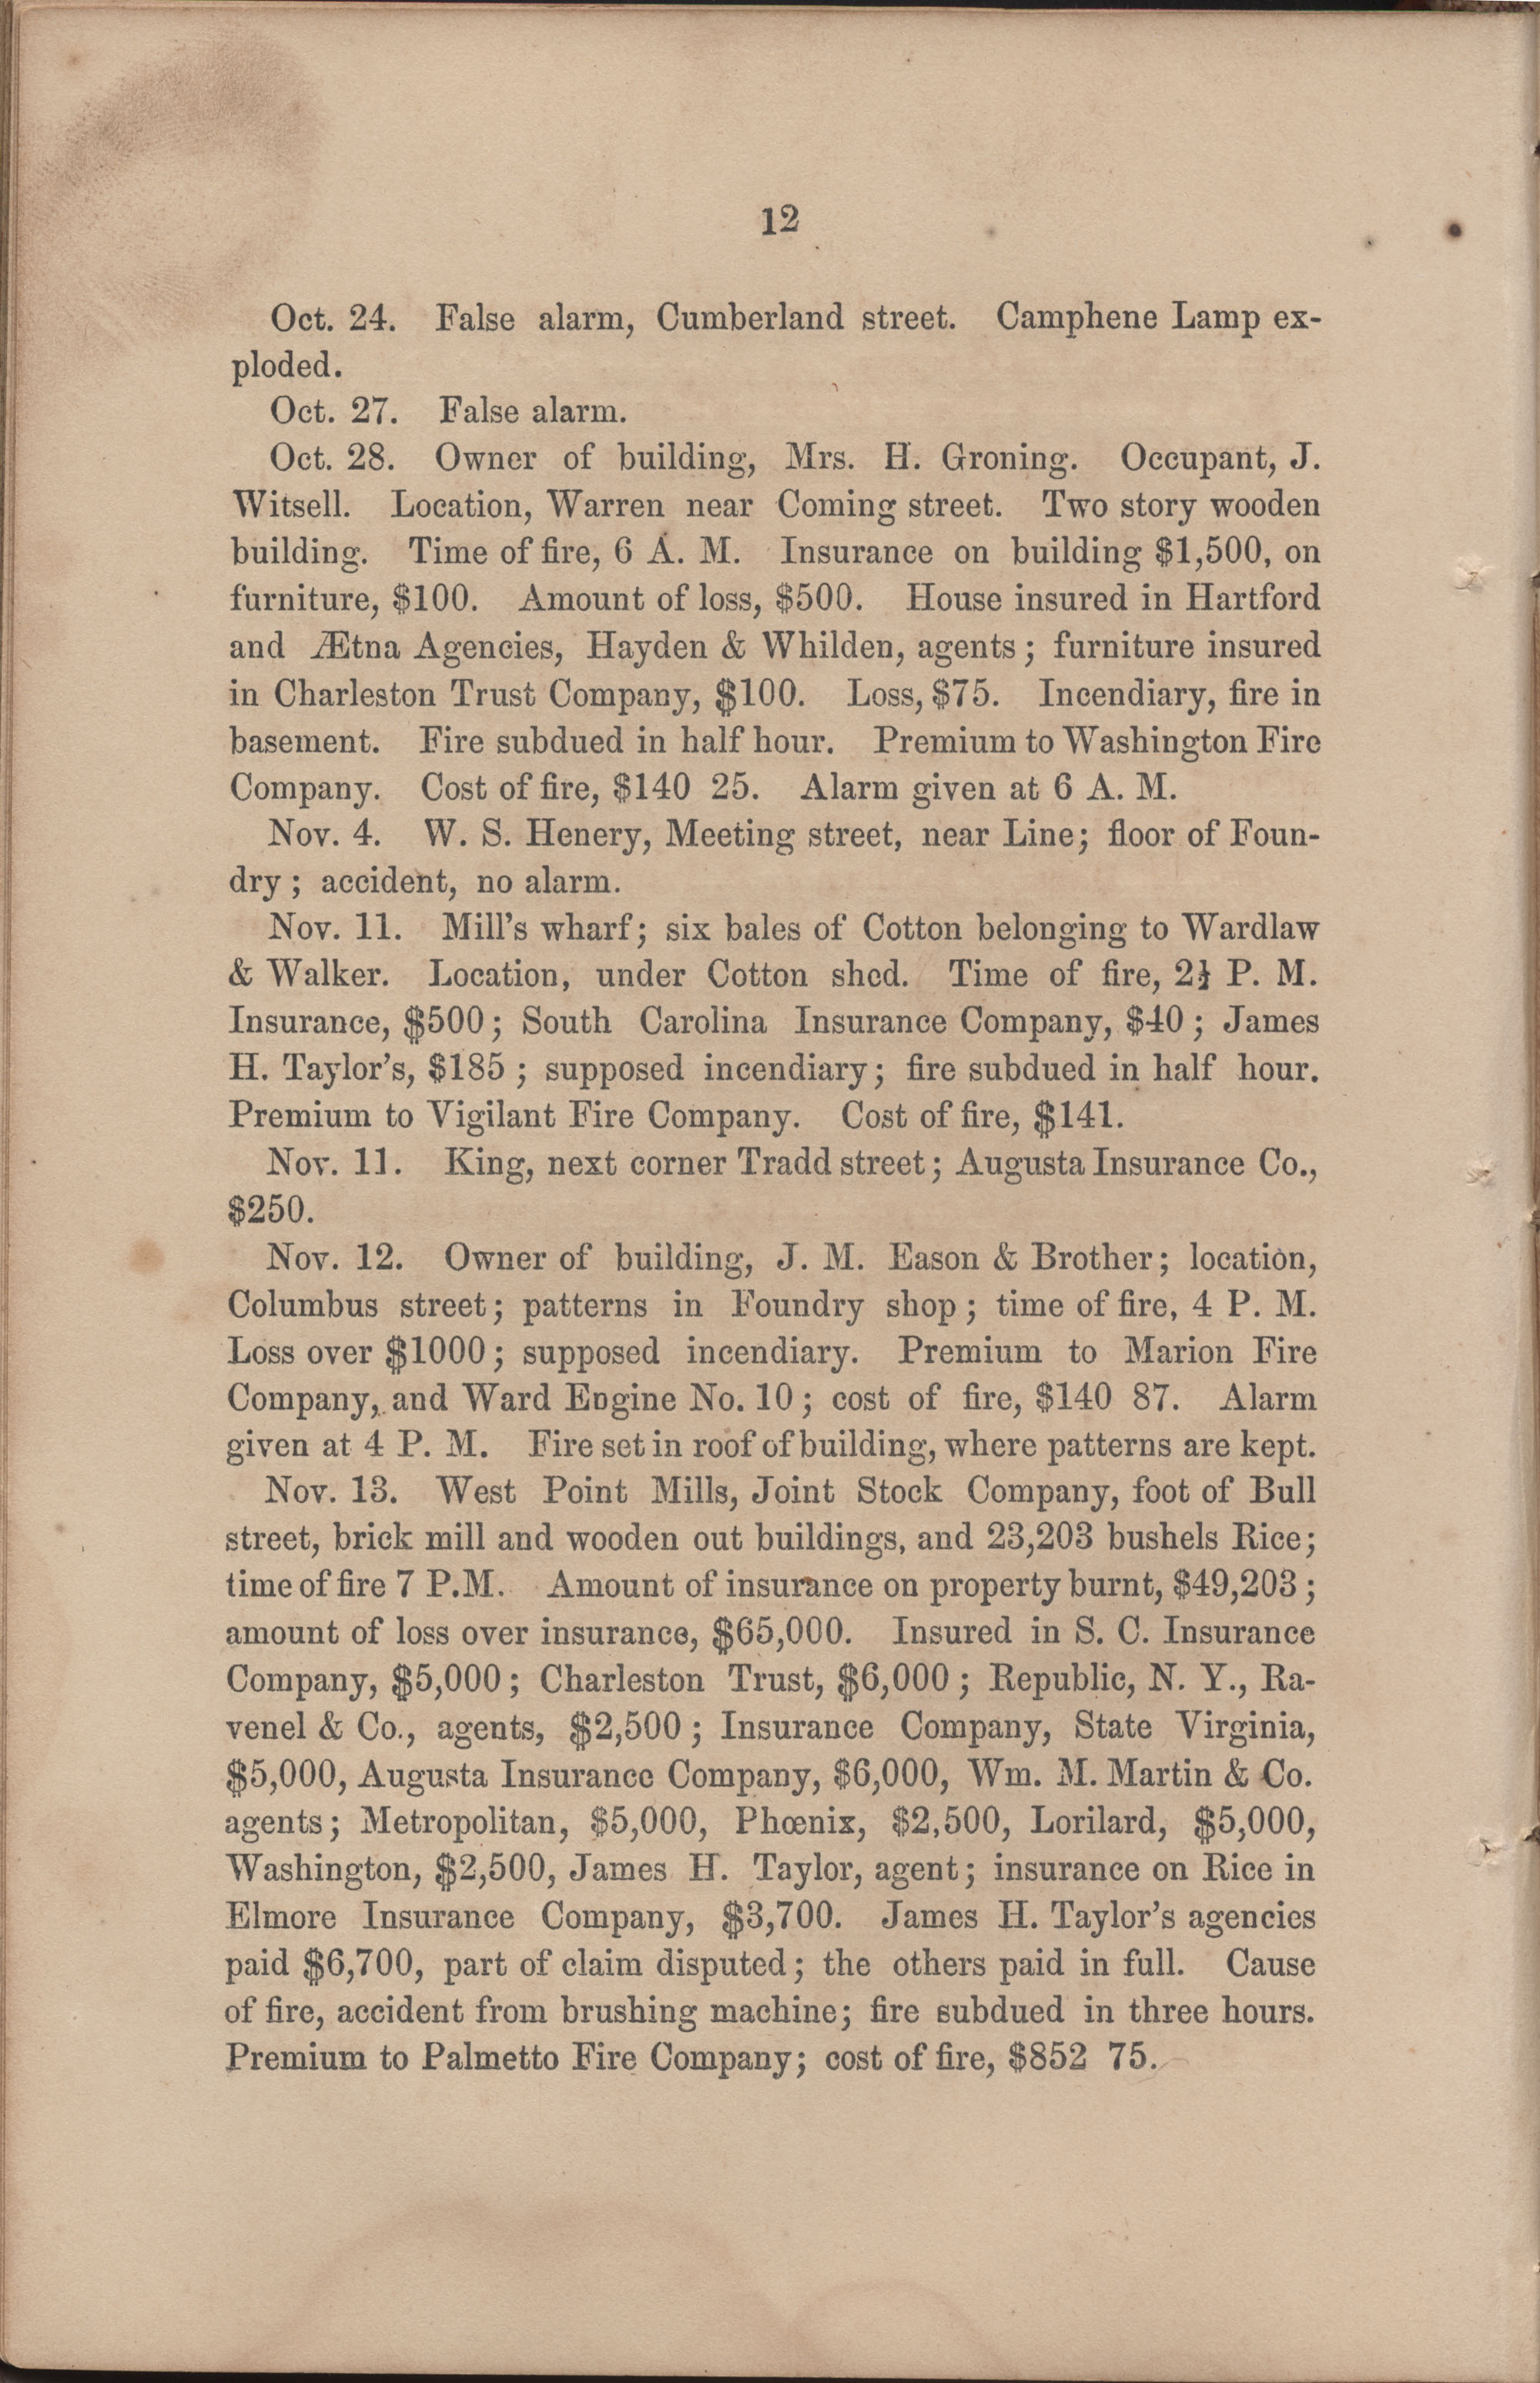 Annual Report of the Chief of the Fire Department of the City of Charleston, page 73